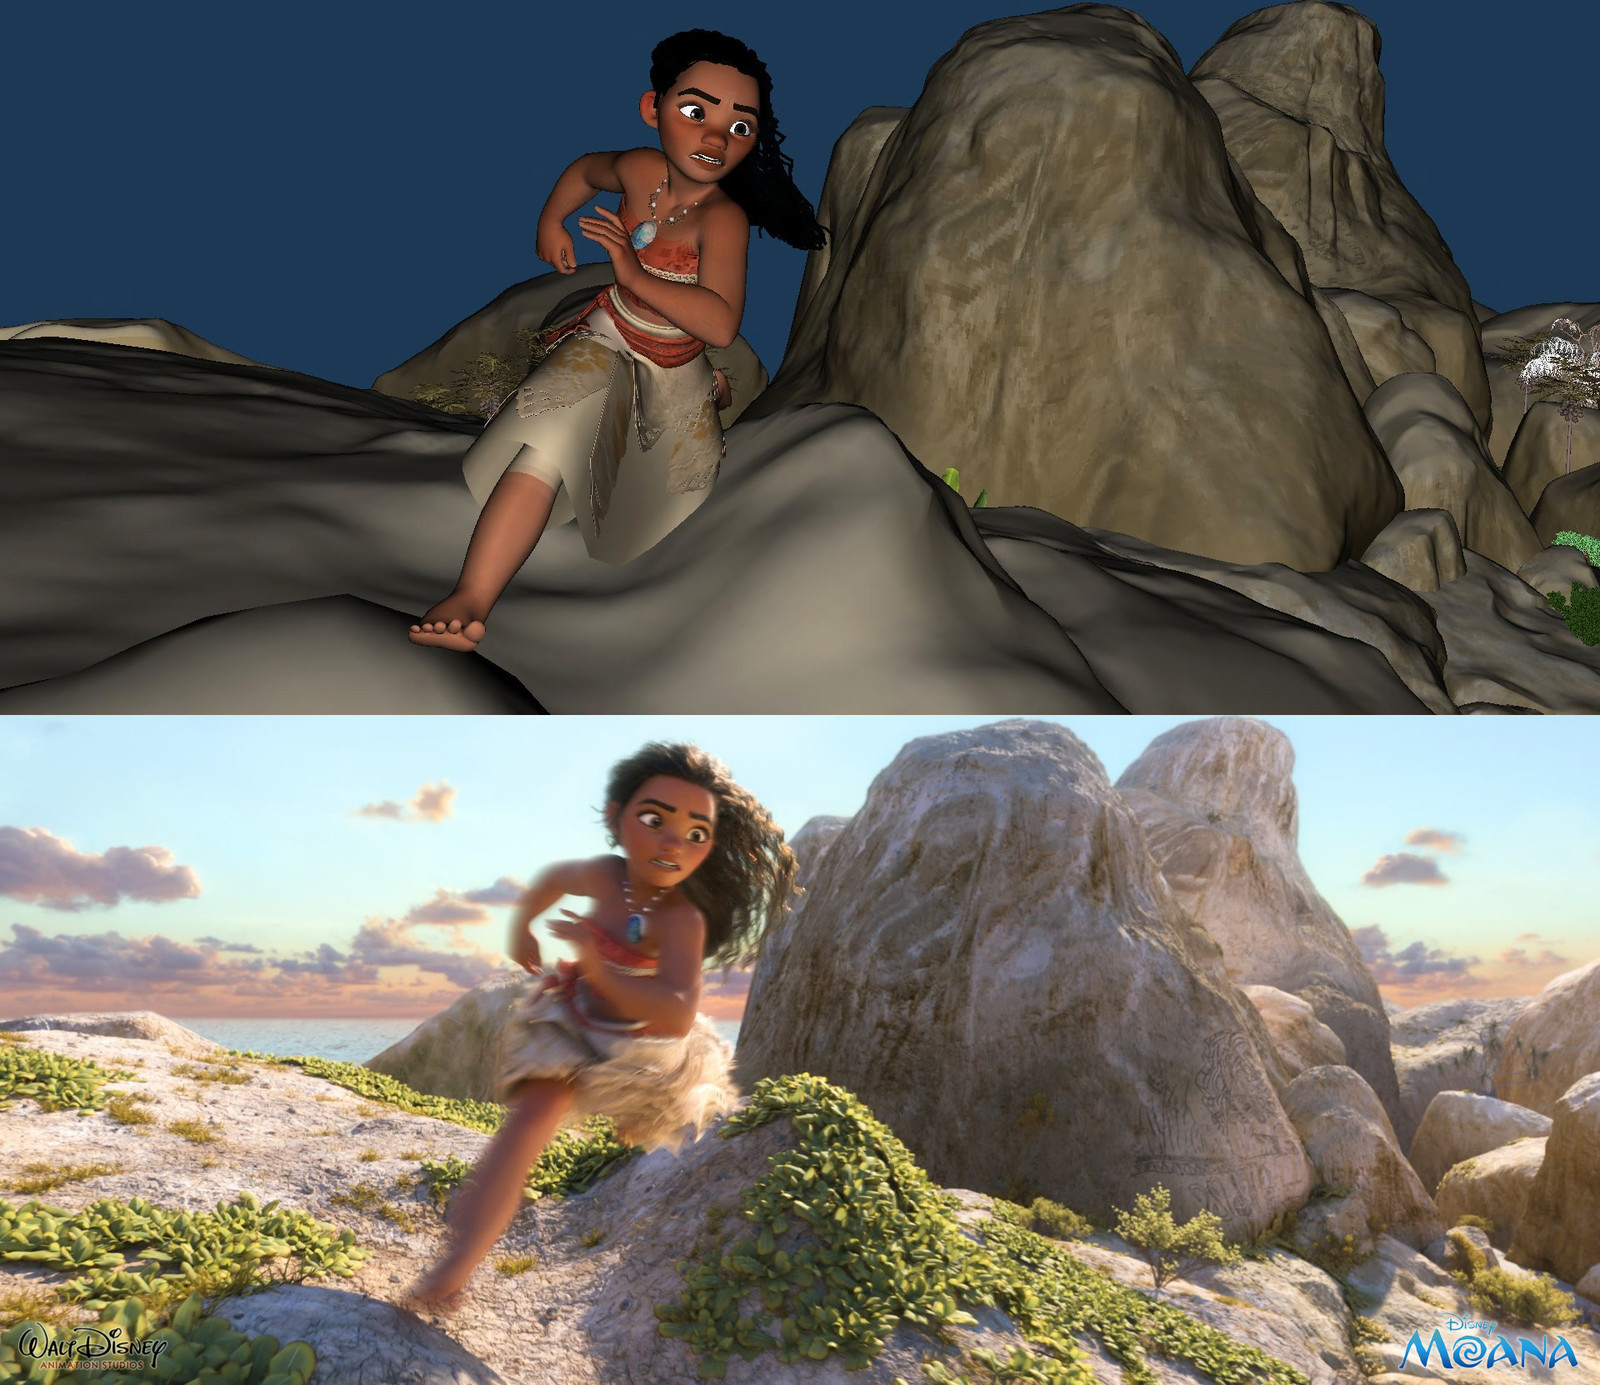 Maya Viewport vs Look Dev Final Frame